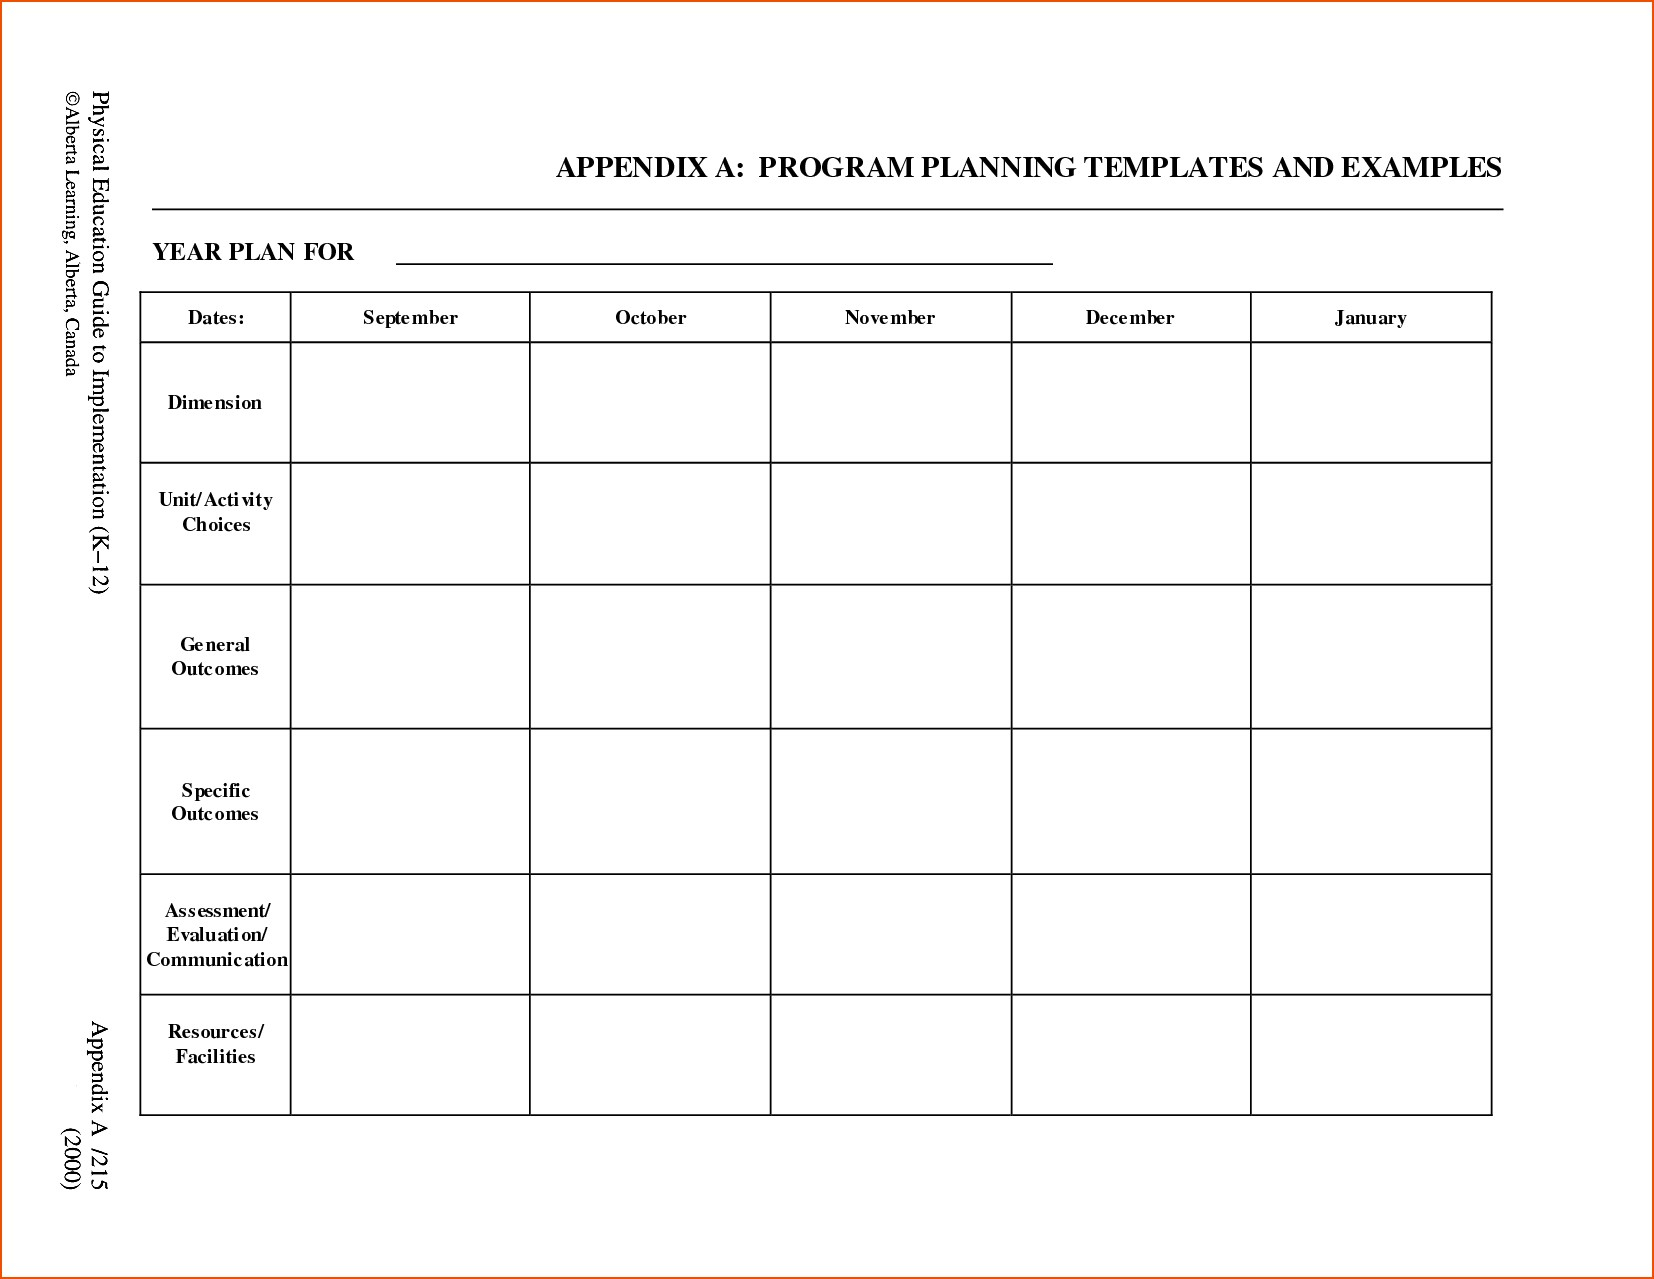 023 Plan Template Free Printable Daily Schedule For Preschool Lesson within Free Preschool Template For Schedule